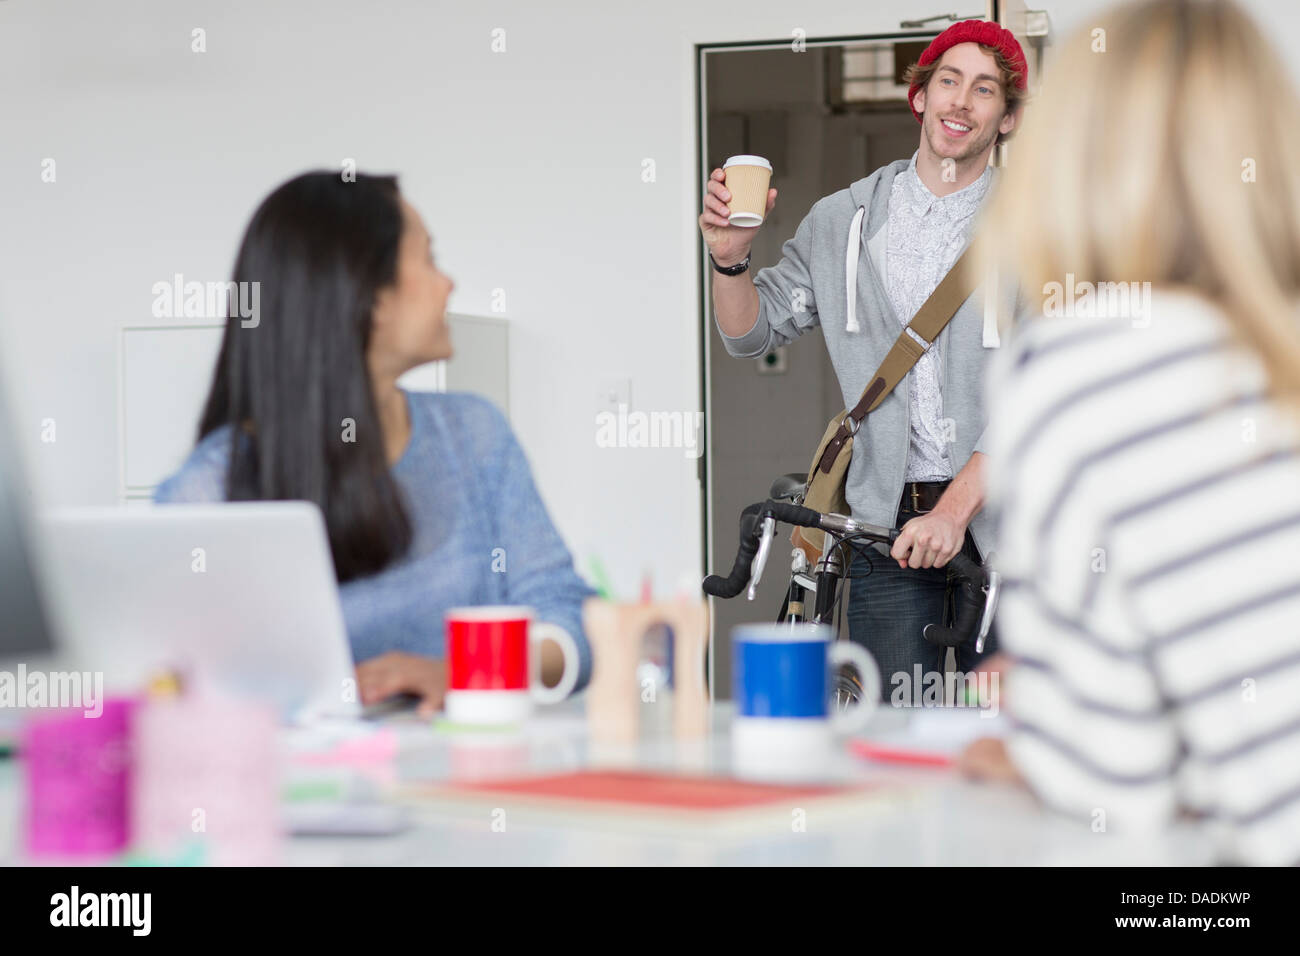 Young man arriving at meeting in creative office - Stock Image